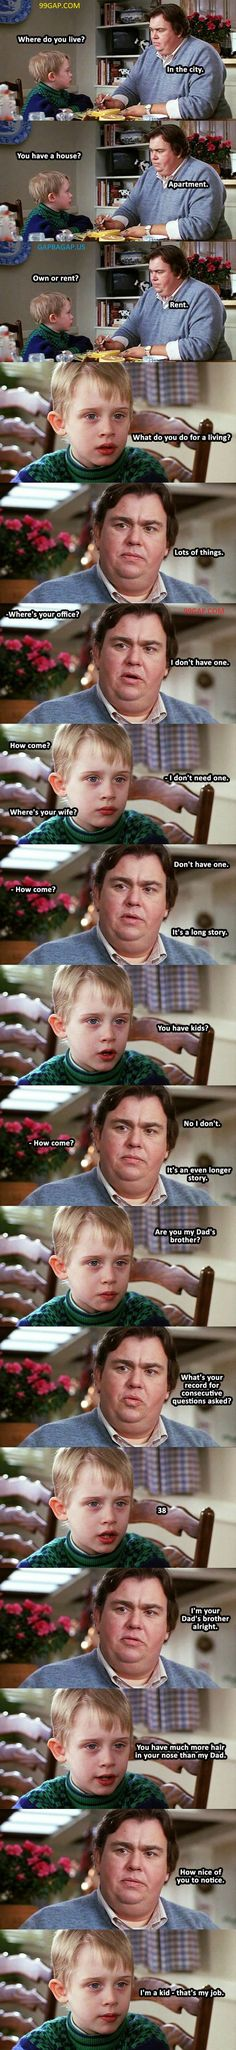 #FunnyJokes Collection From Uncle Buck #funnymemes #funnypictures